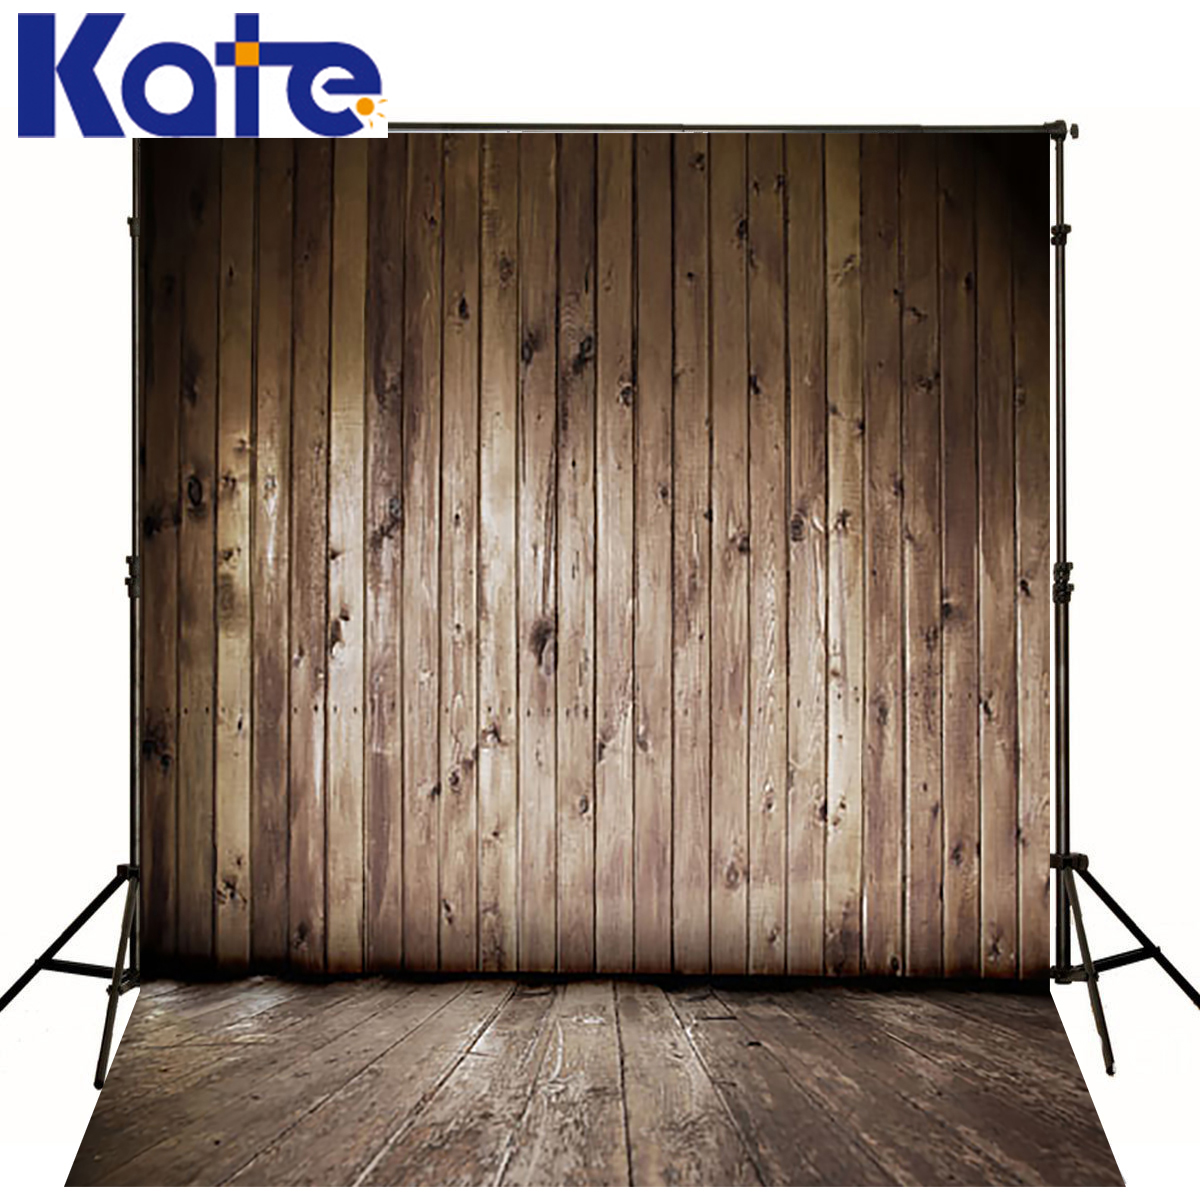 Kate Newborn Baby Backgrounds Fotografia Light Wood Wall Fundo Fotografico Madeira Old Wooden Floor Backdrops For Photo Studio kate newborn baby backgrounds fotografia light wood wall fundo fotografico madeira old wooden floor backdrops for photo studio